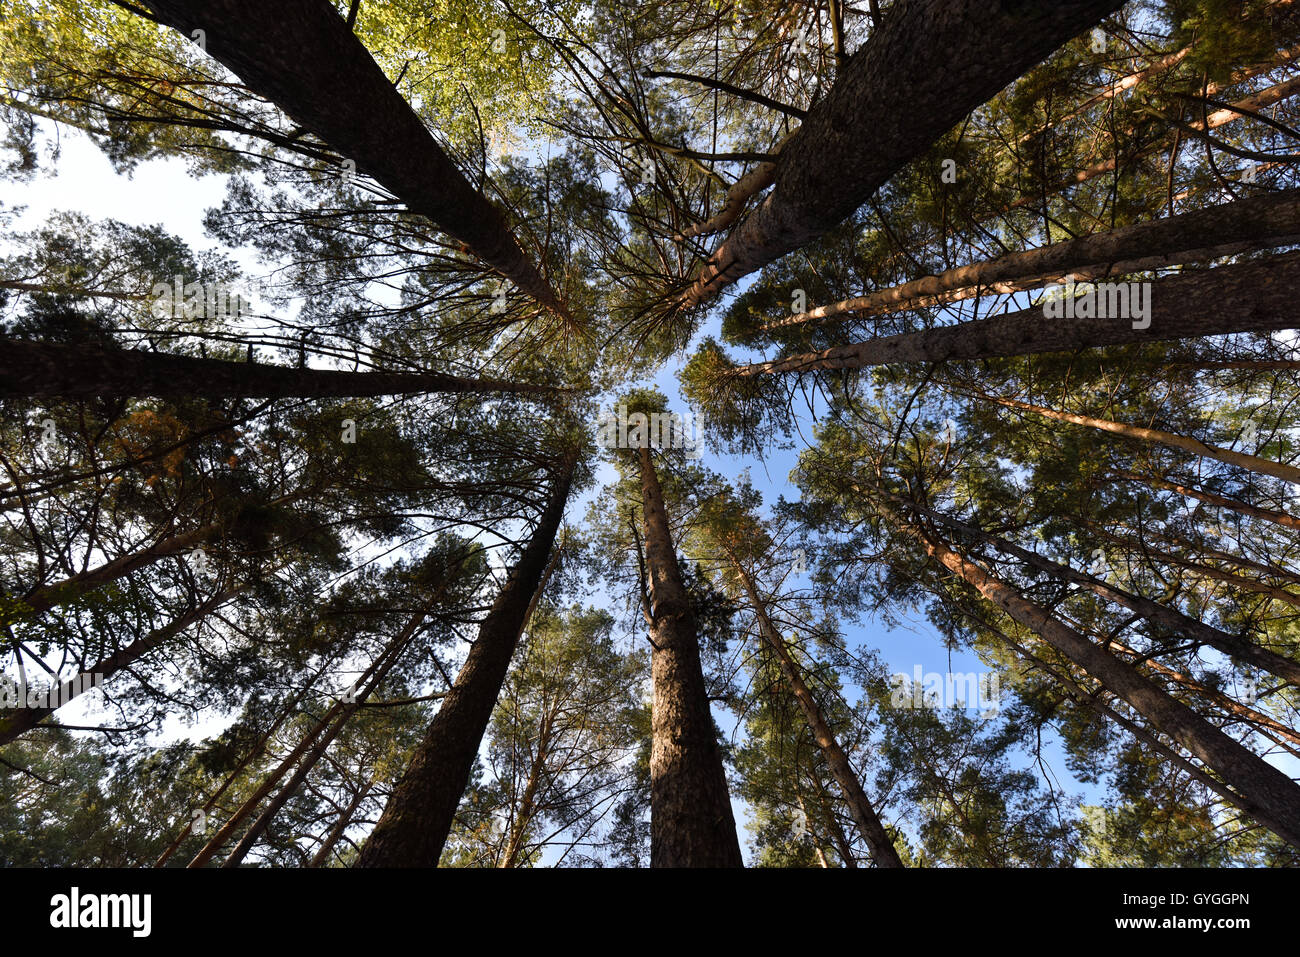 The trunks of the pine trees reach for the sky - - wide-angle lens - Stock Image